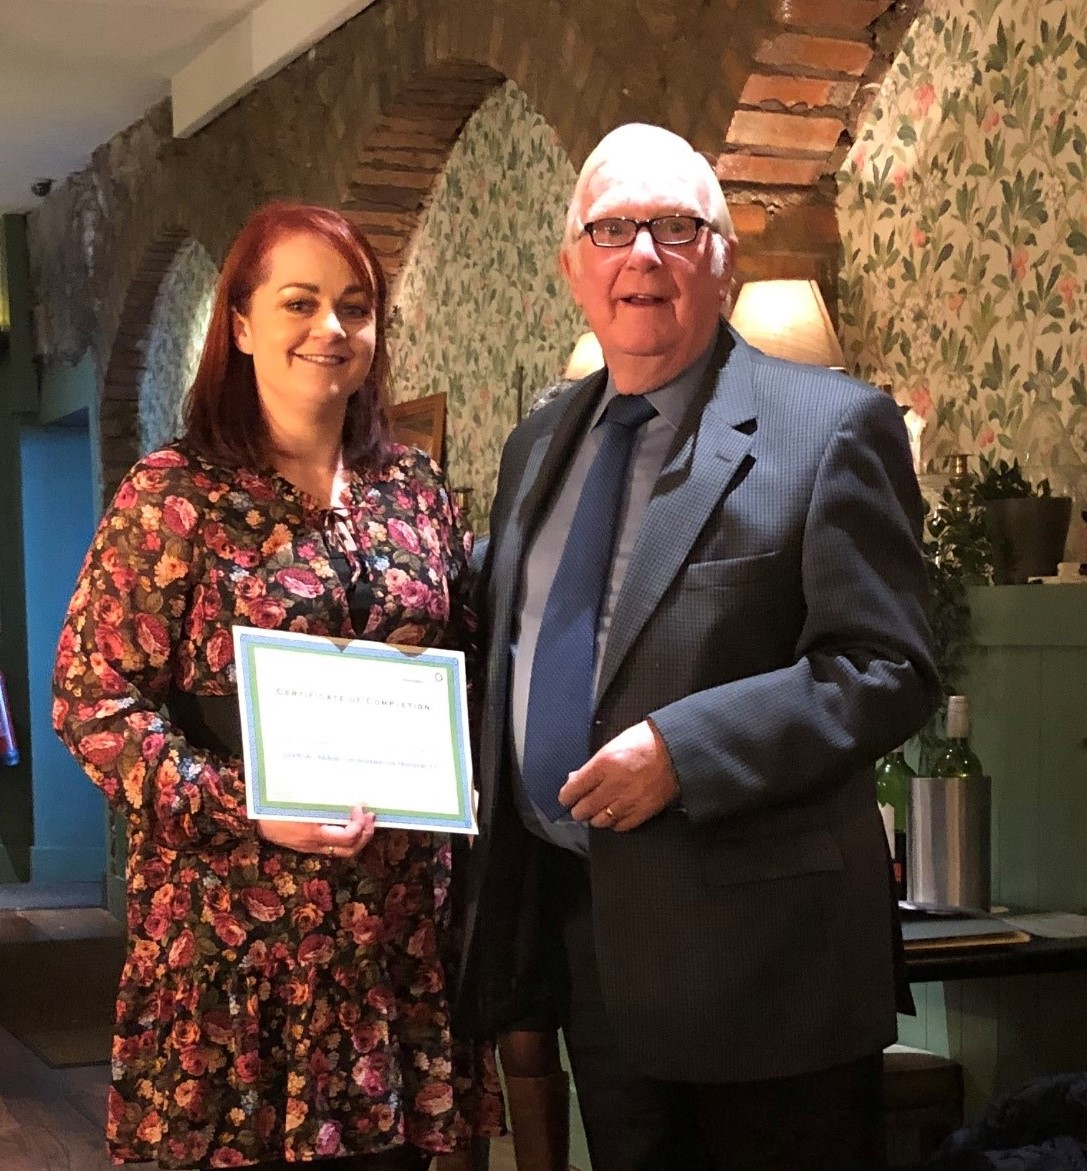 Ciara Doherty, Wicklow CIC, receives her ETIP certificate from South Leinster CIS board member, Eamonn Burgess